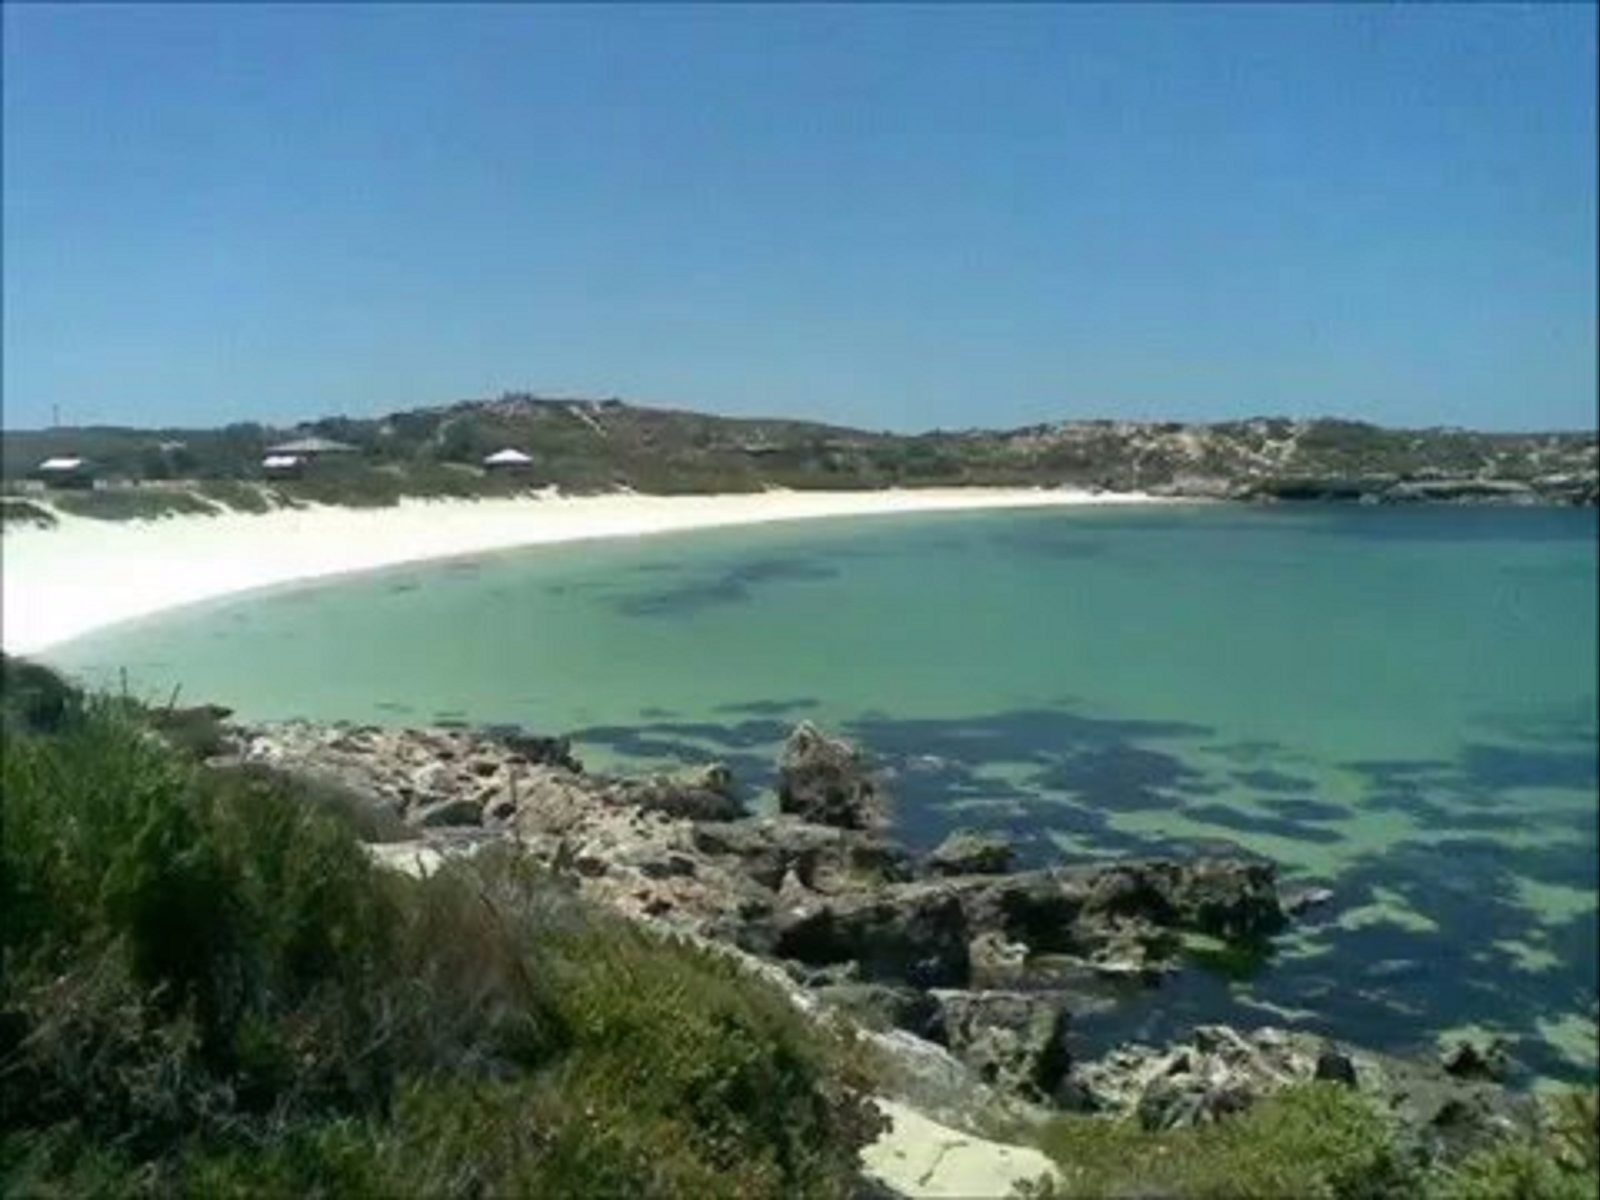 South Bay, Green Head, Western Australia